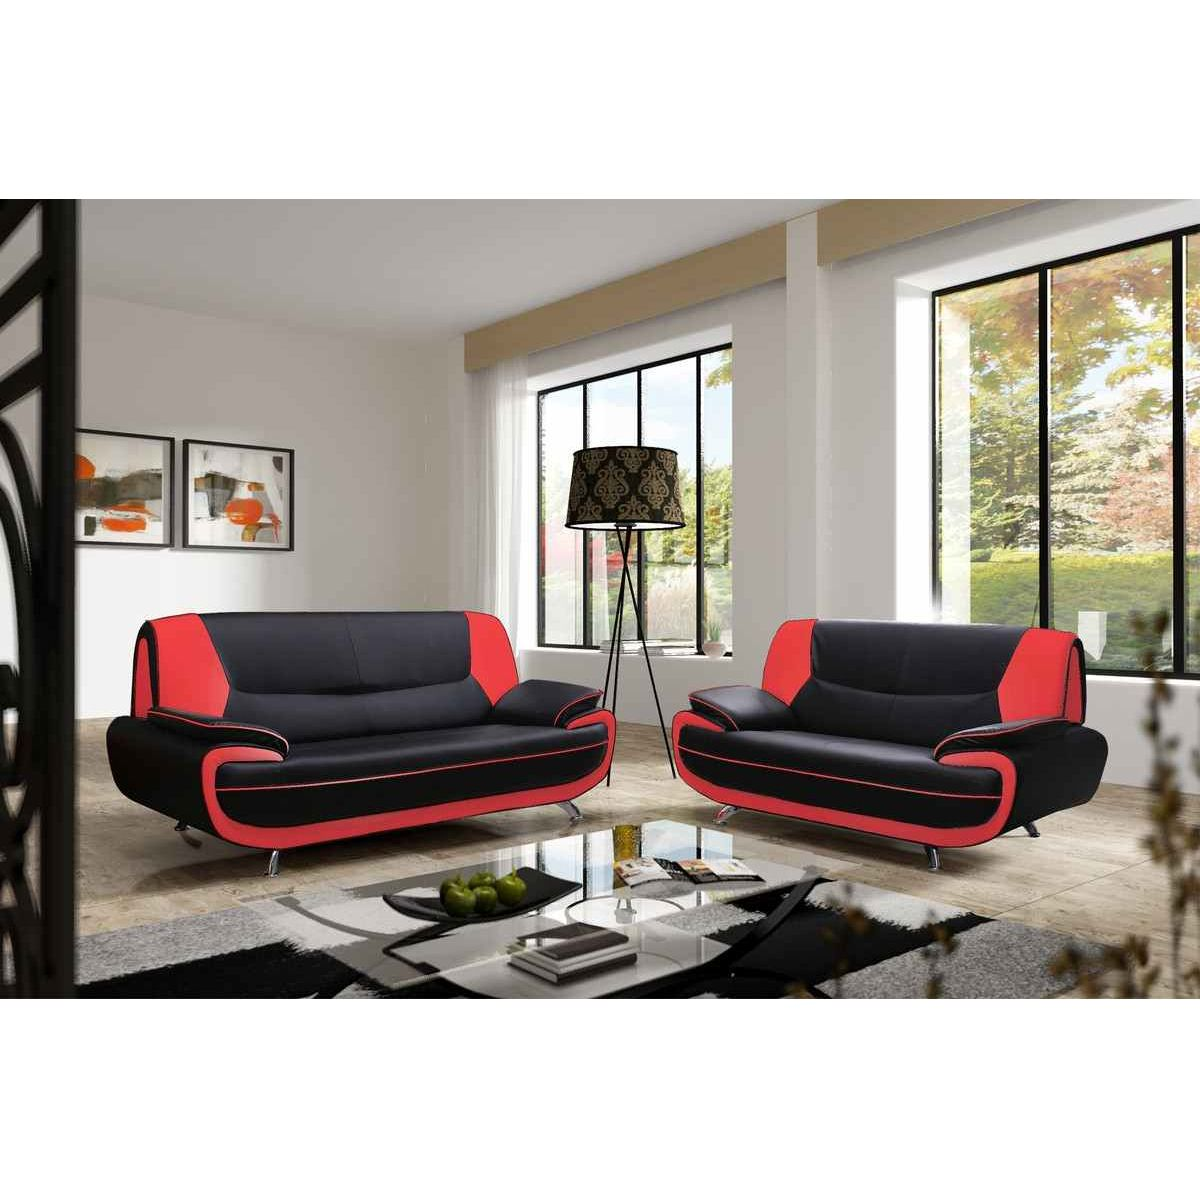 deco in paris canape 3 2 places noir et rouge marita marita noir rouge. Black Bedroom Furniture Sets. Home Design Ideas